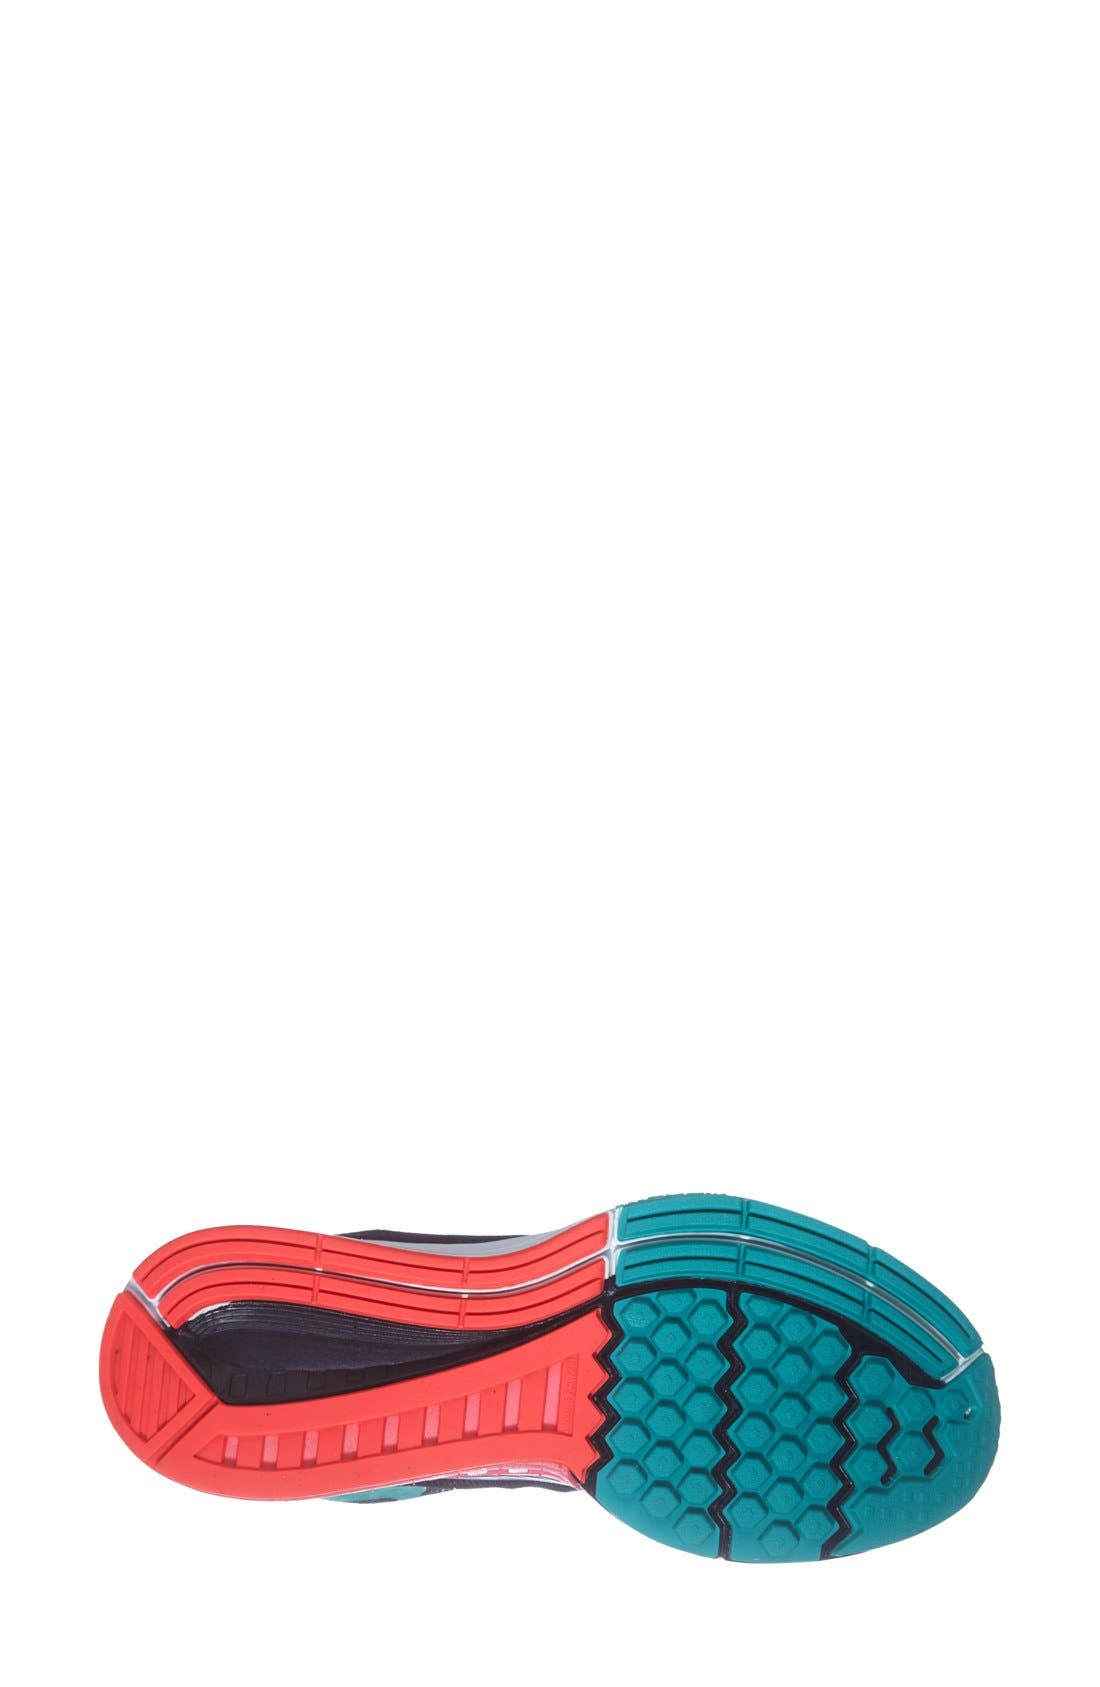 NIKE,                             'Air Zoom Structure 18' Running Shoe,                             Alternate thumbnail 2, color,                             001